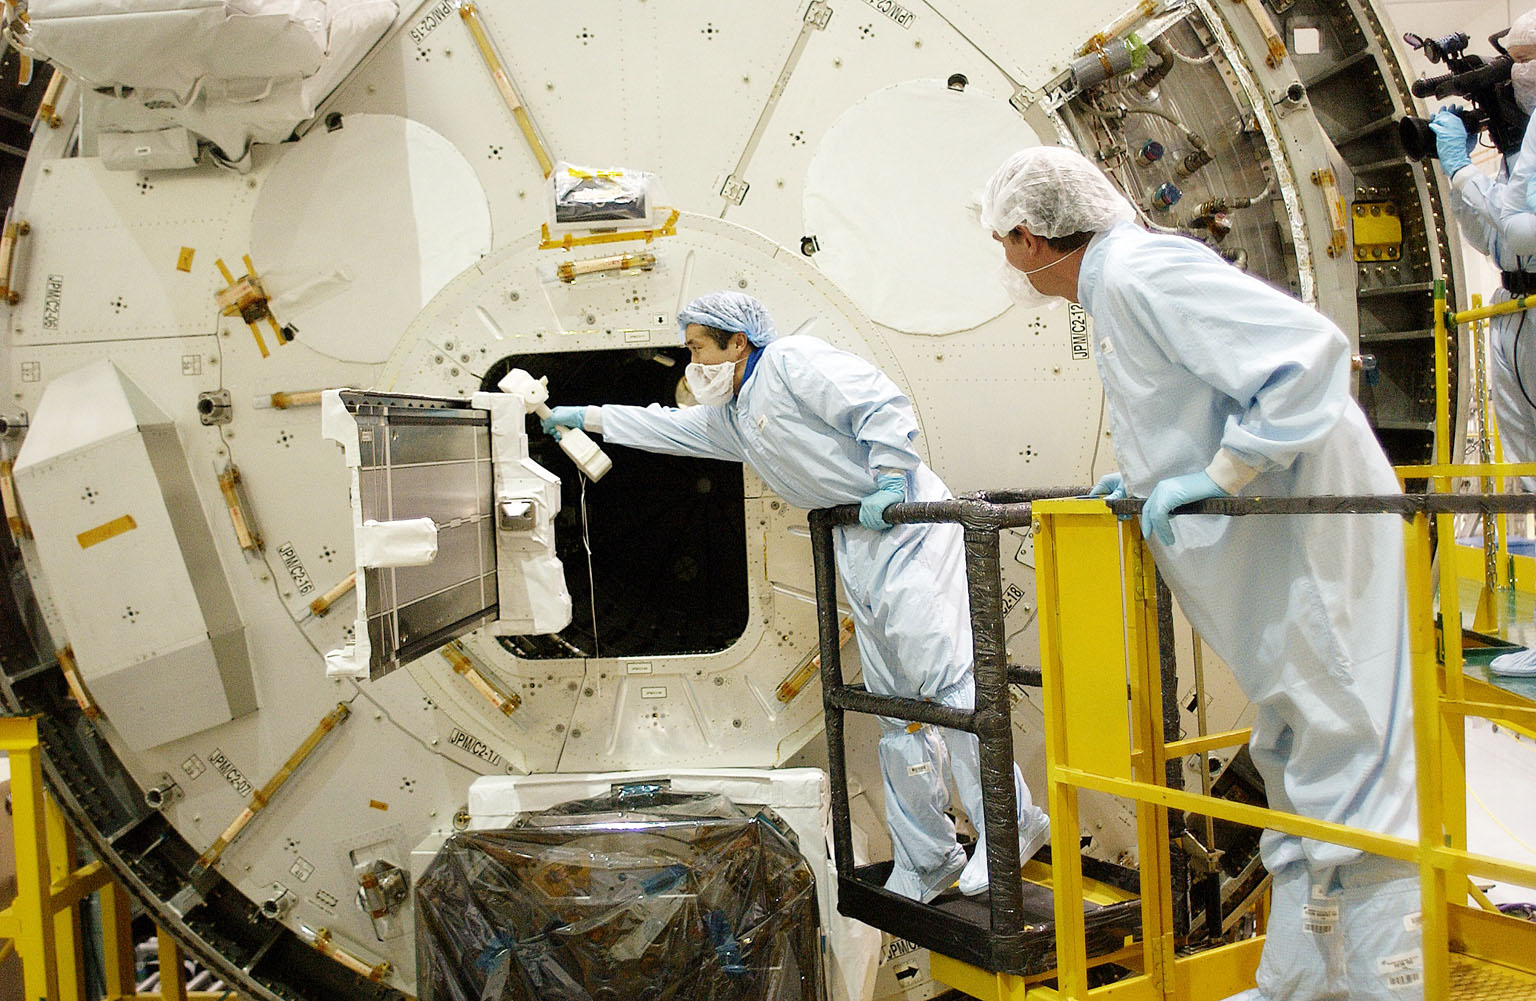 KENNEDY SPACE CENTER, FLA. - Japanese astronaut Koichi Wakata (left) works with a tray extended from inside the Pressurized Module, or PM, part of the Japanese Experiment Module (JEM). The PM provides a shirt-sleeve environment in which astronauts on the International Space Station can conduct microgravity experiments. There are a total of 23 racks, including 10 experiment racks, inside the PM providing a power supply, communications, air conditioning, hardware cooling, water control and experiment support functions.